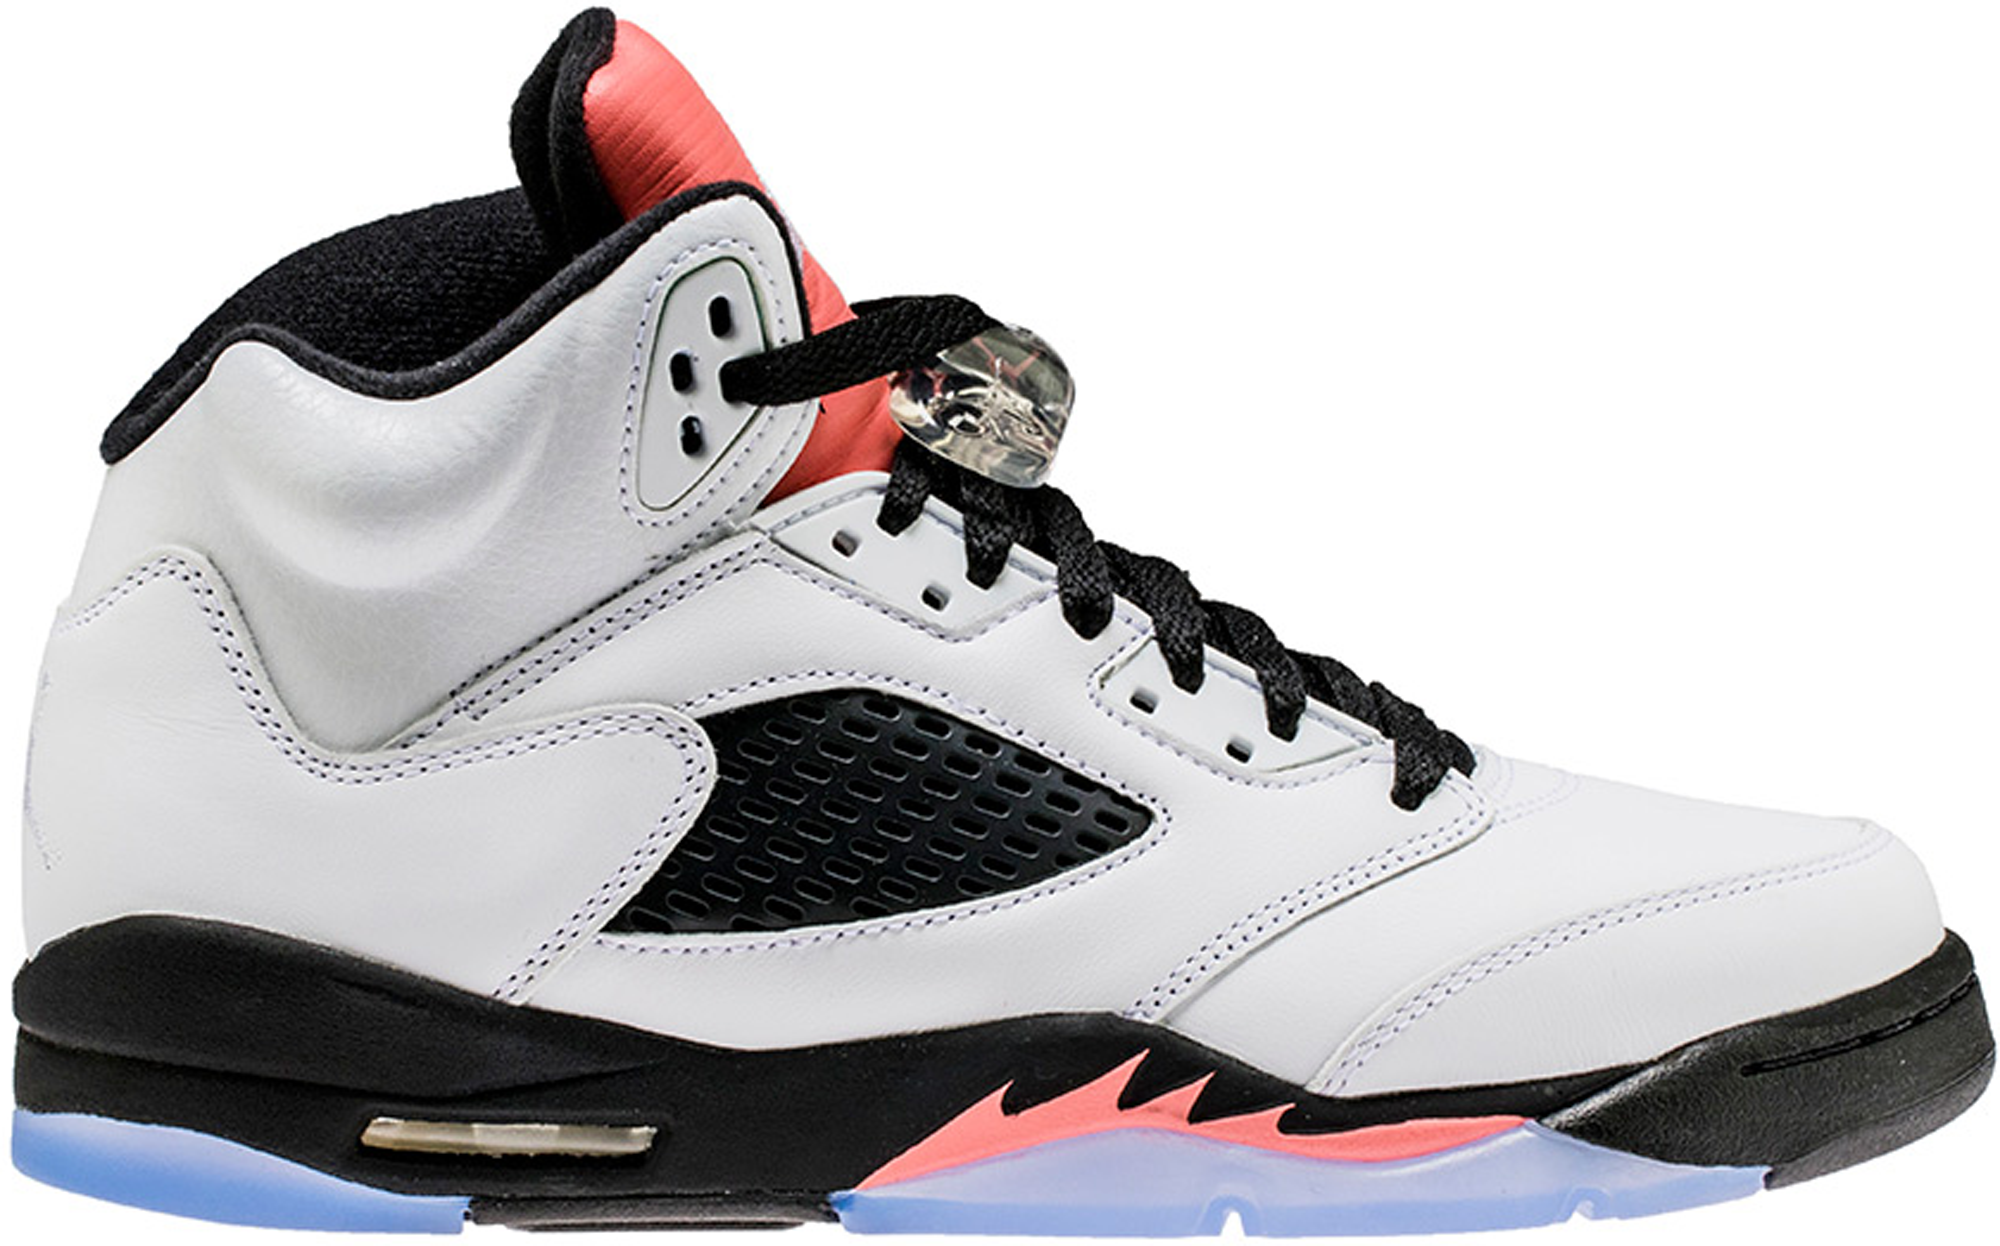 new style 5a5ab 035d5 I just listed an Ask for the Jordan 5 Retro Sunblush (GS) on ...